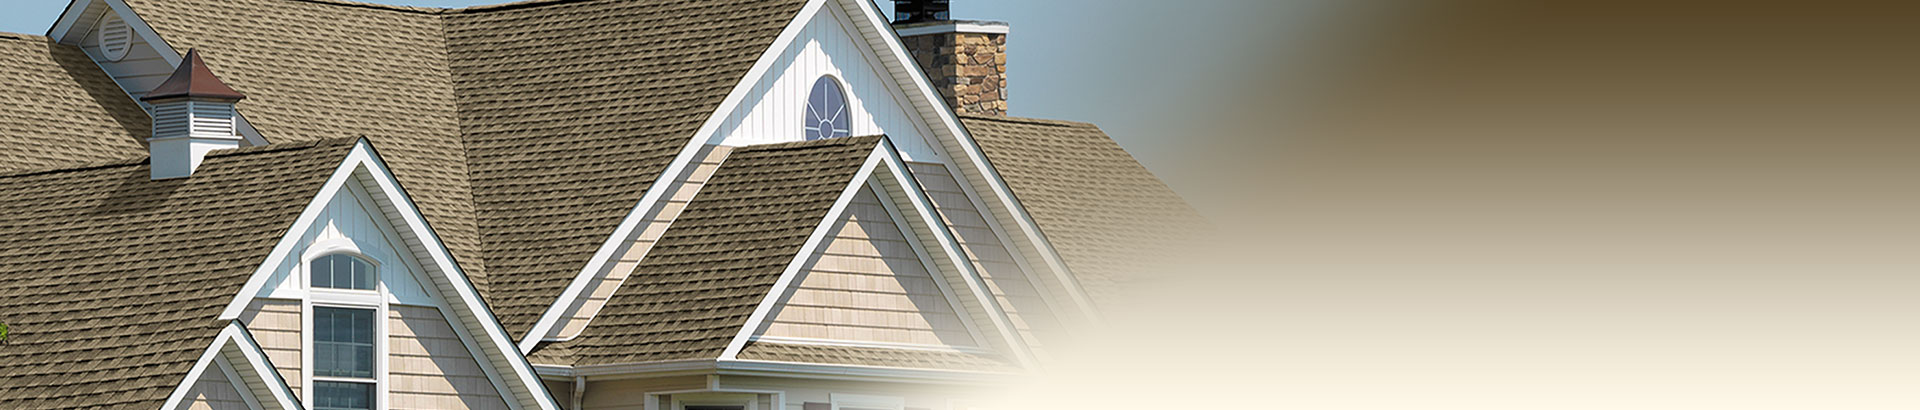 spotless-seamless-exteriors-roofing-install.jpg